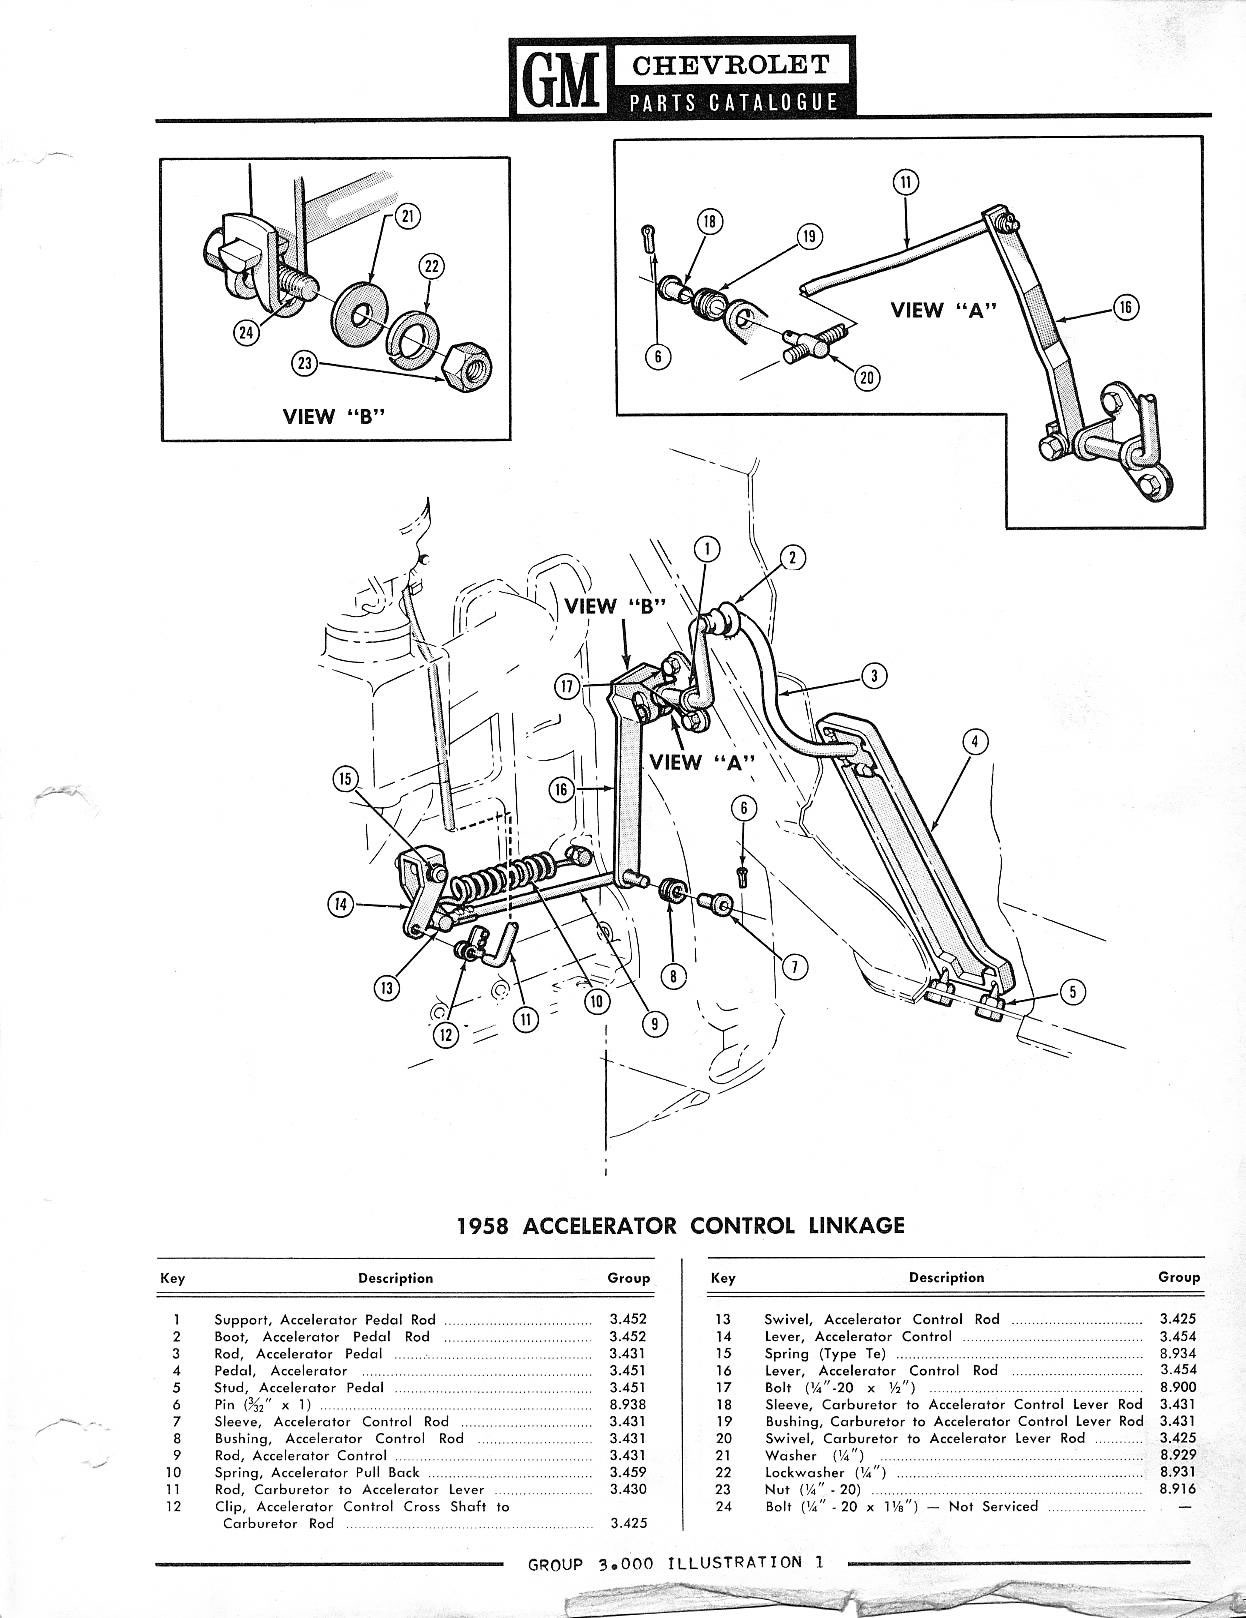 1968 Valiant Wiring Diagram Felix From Valiant Wiring